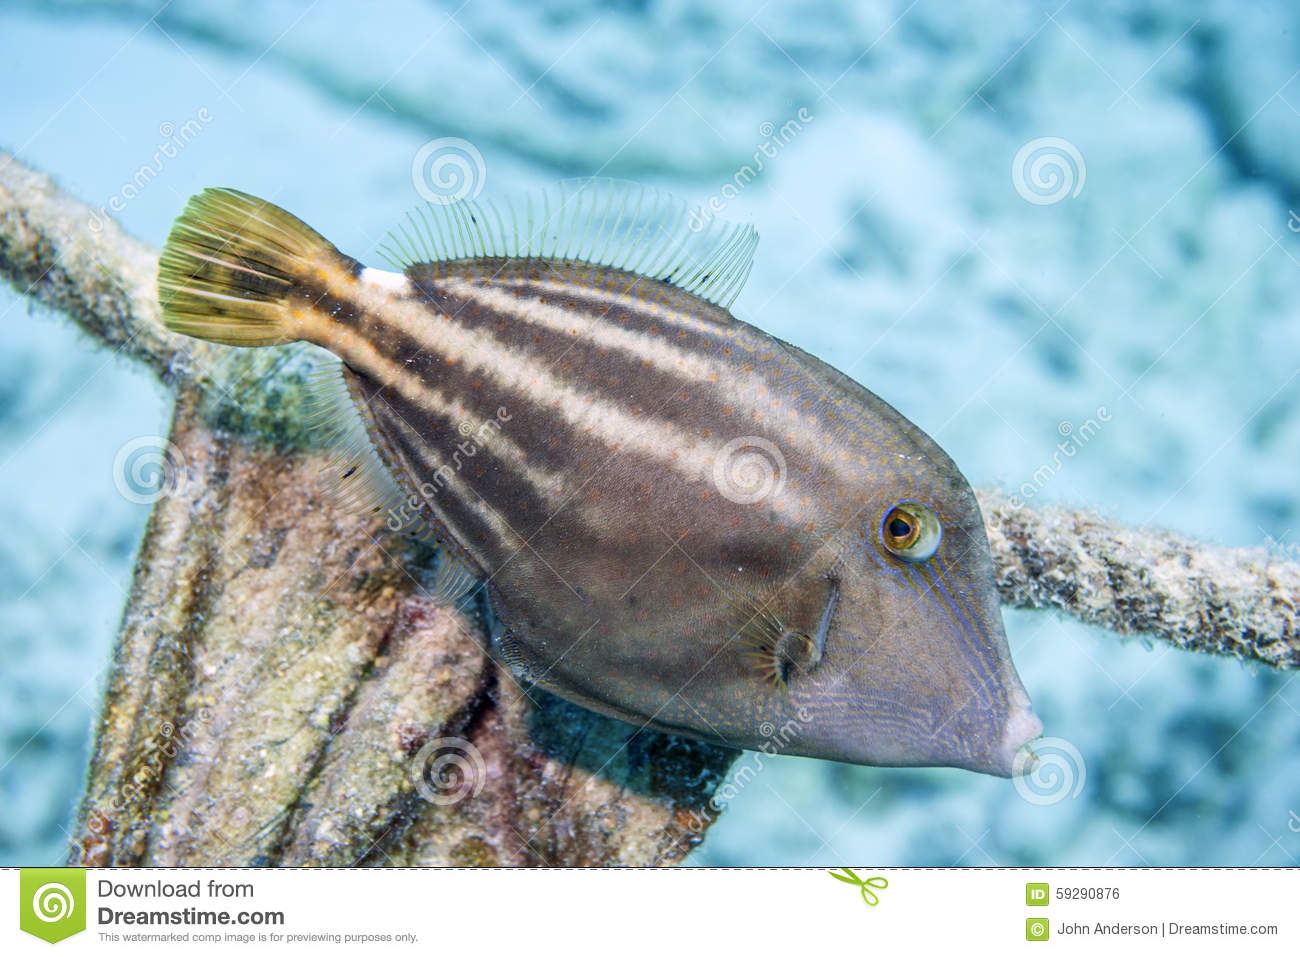 Orangespotted filefish, Cantherhines pullus